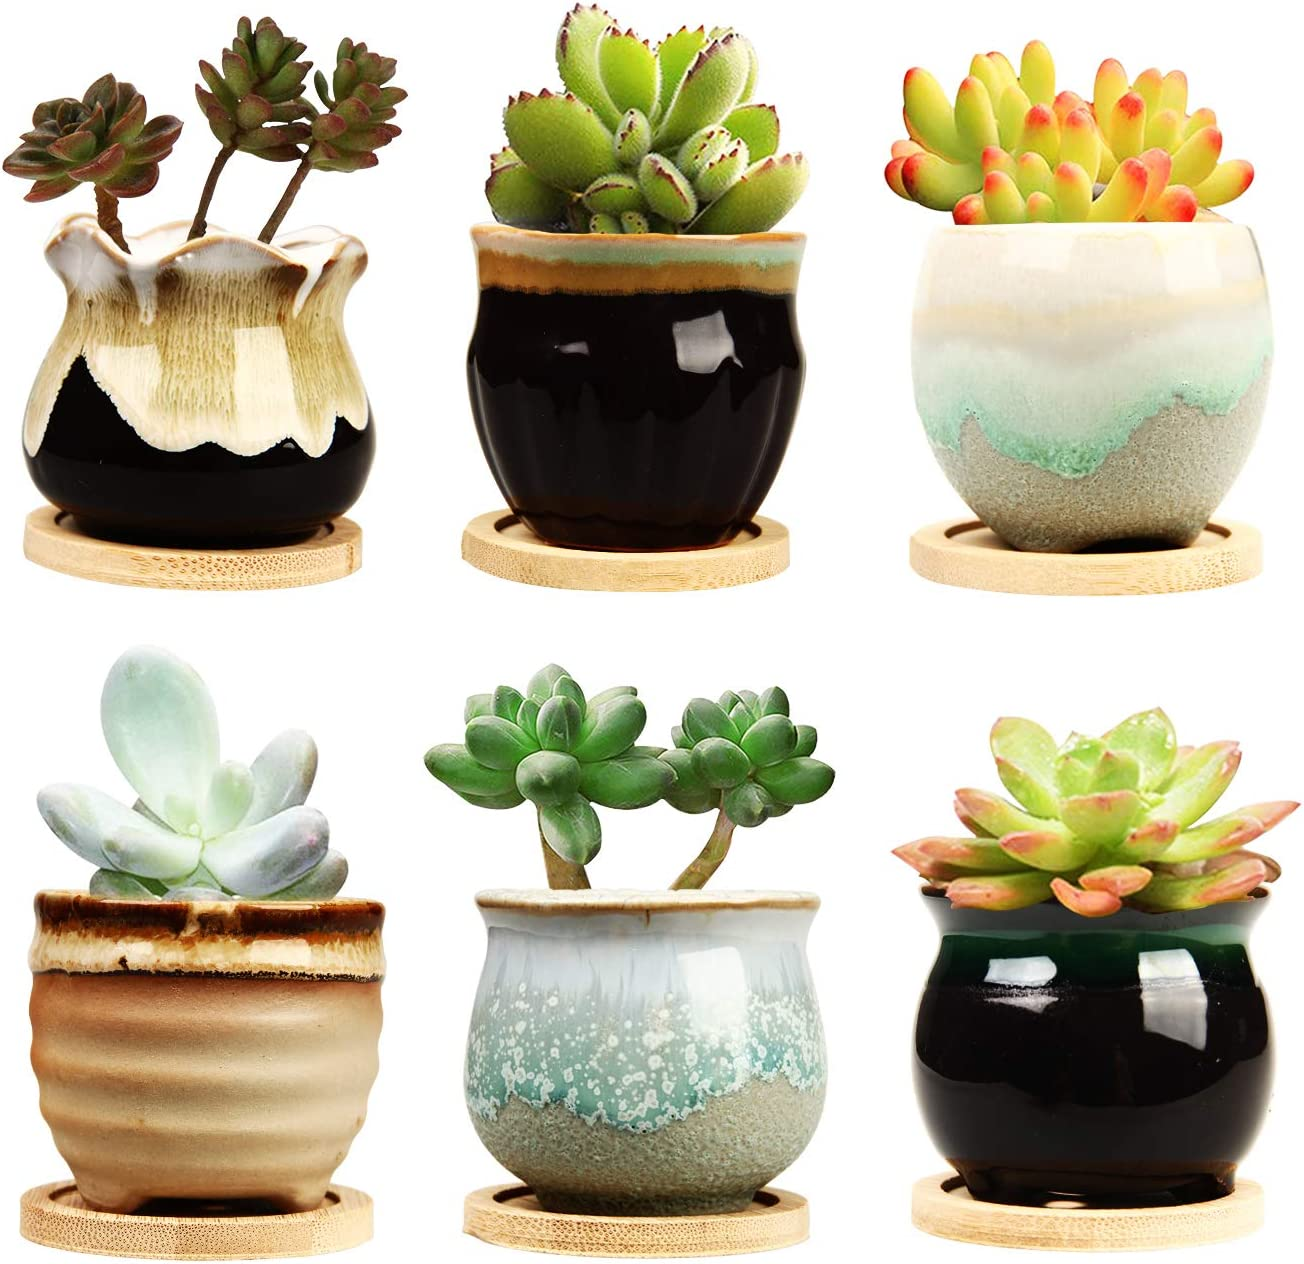 Brajttt 3.3 Inch Ceramic Succulent Planter Pot with Drainage,Planting Pot  Flower Pots,Small Planter Pots for Mini Plant Ceramic Flowing Glaze Base